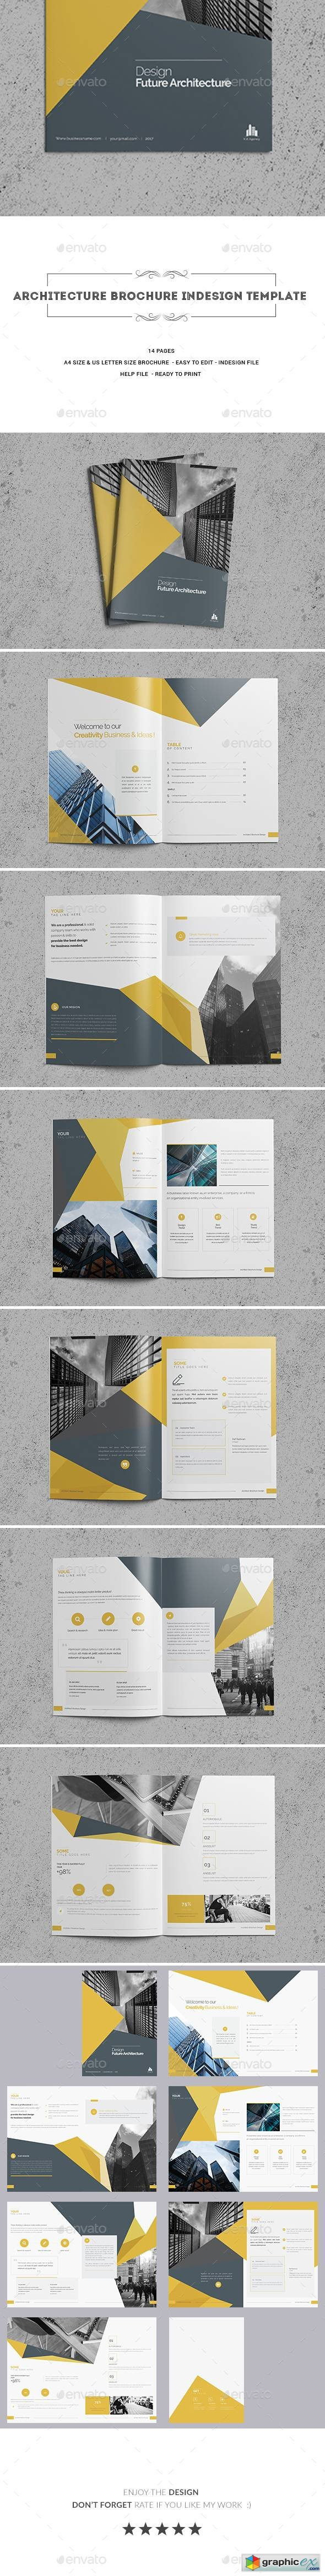 Architecture Brochure Indesign Template